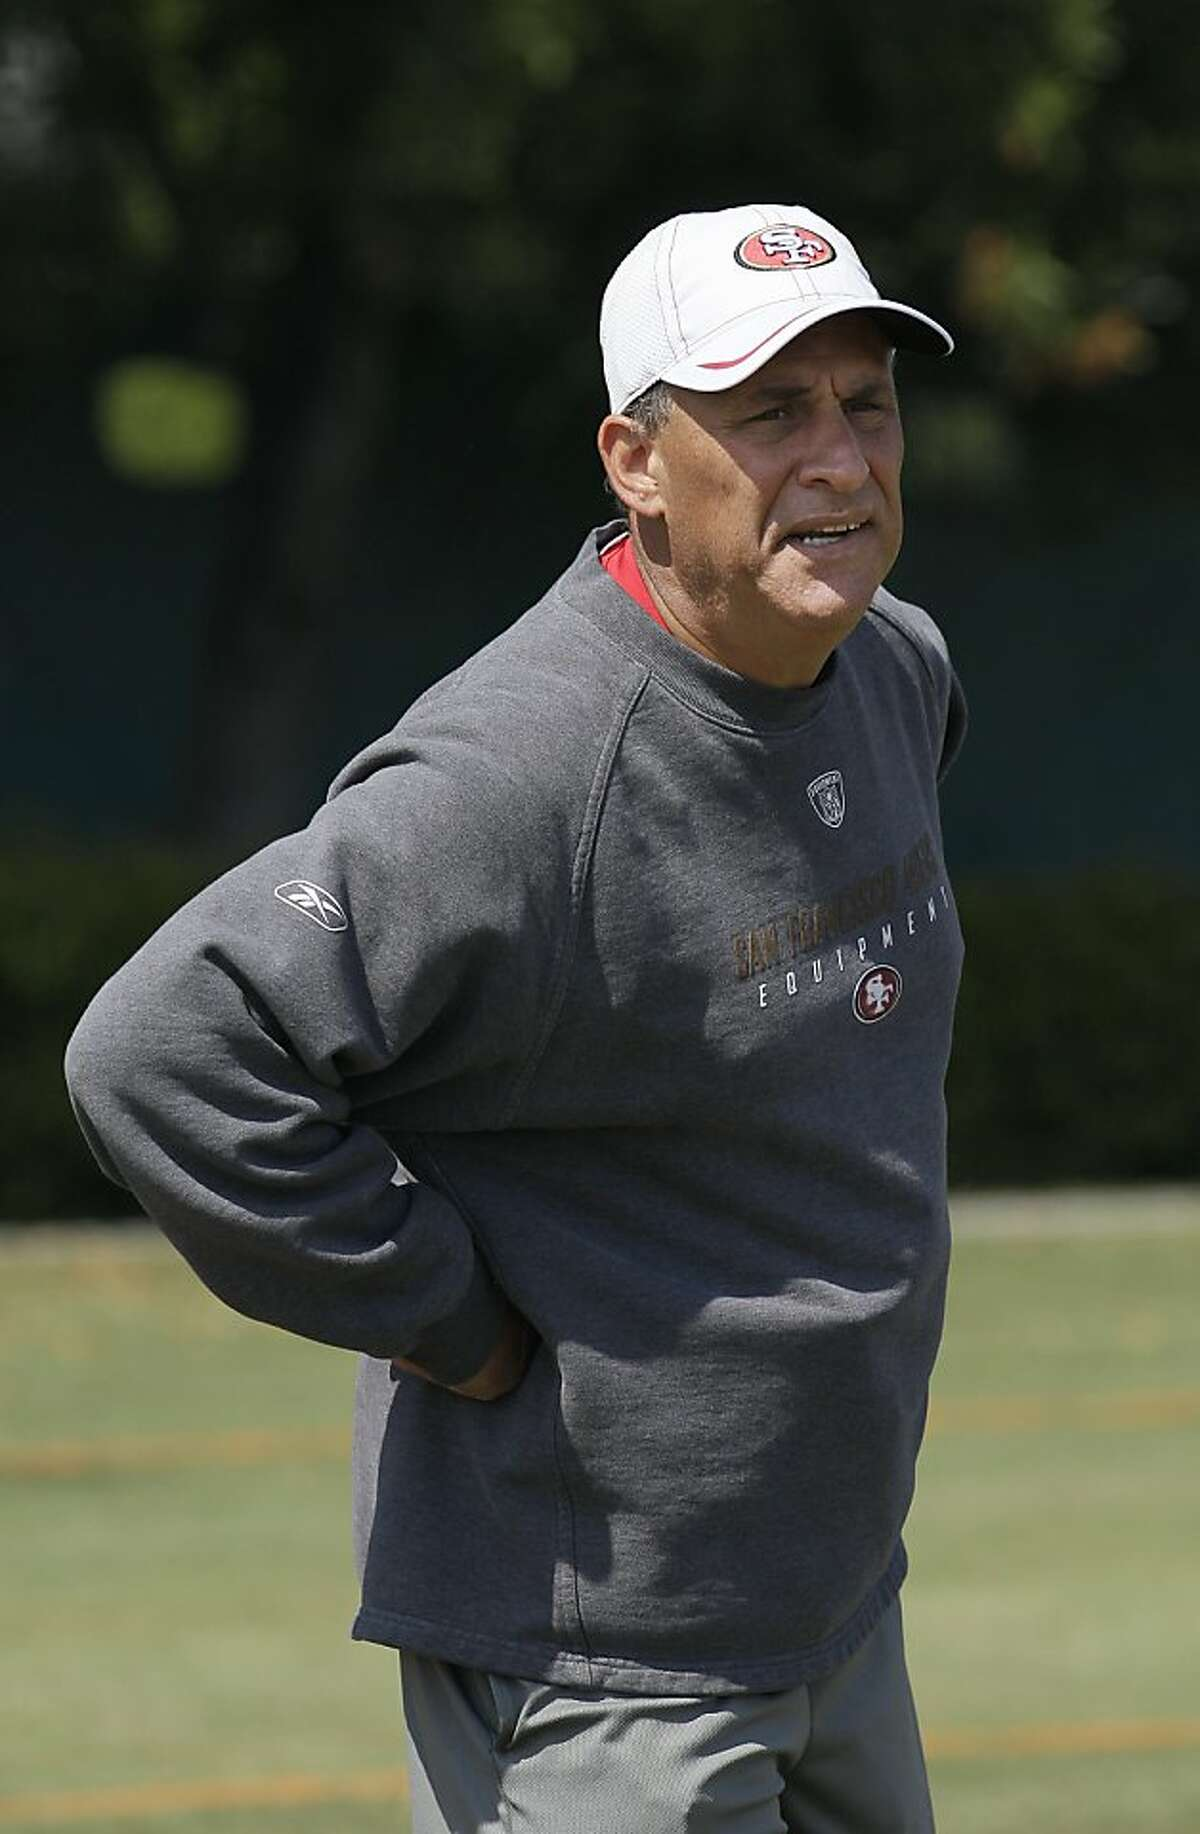 San Francisco 49ers defensive coordinator Vic Fangio during NFL football training camp in Santa Clara, Calif., Friday, July 29, 2011. (AP Photo/Jeff Chiu) Ran on: 10-27-2011 Vic Fangio has mastered the art of the matchup.